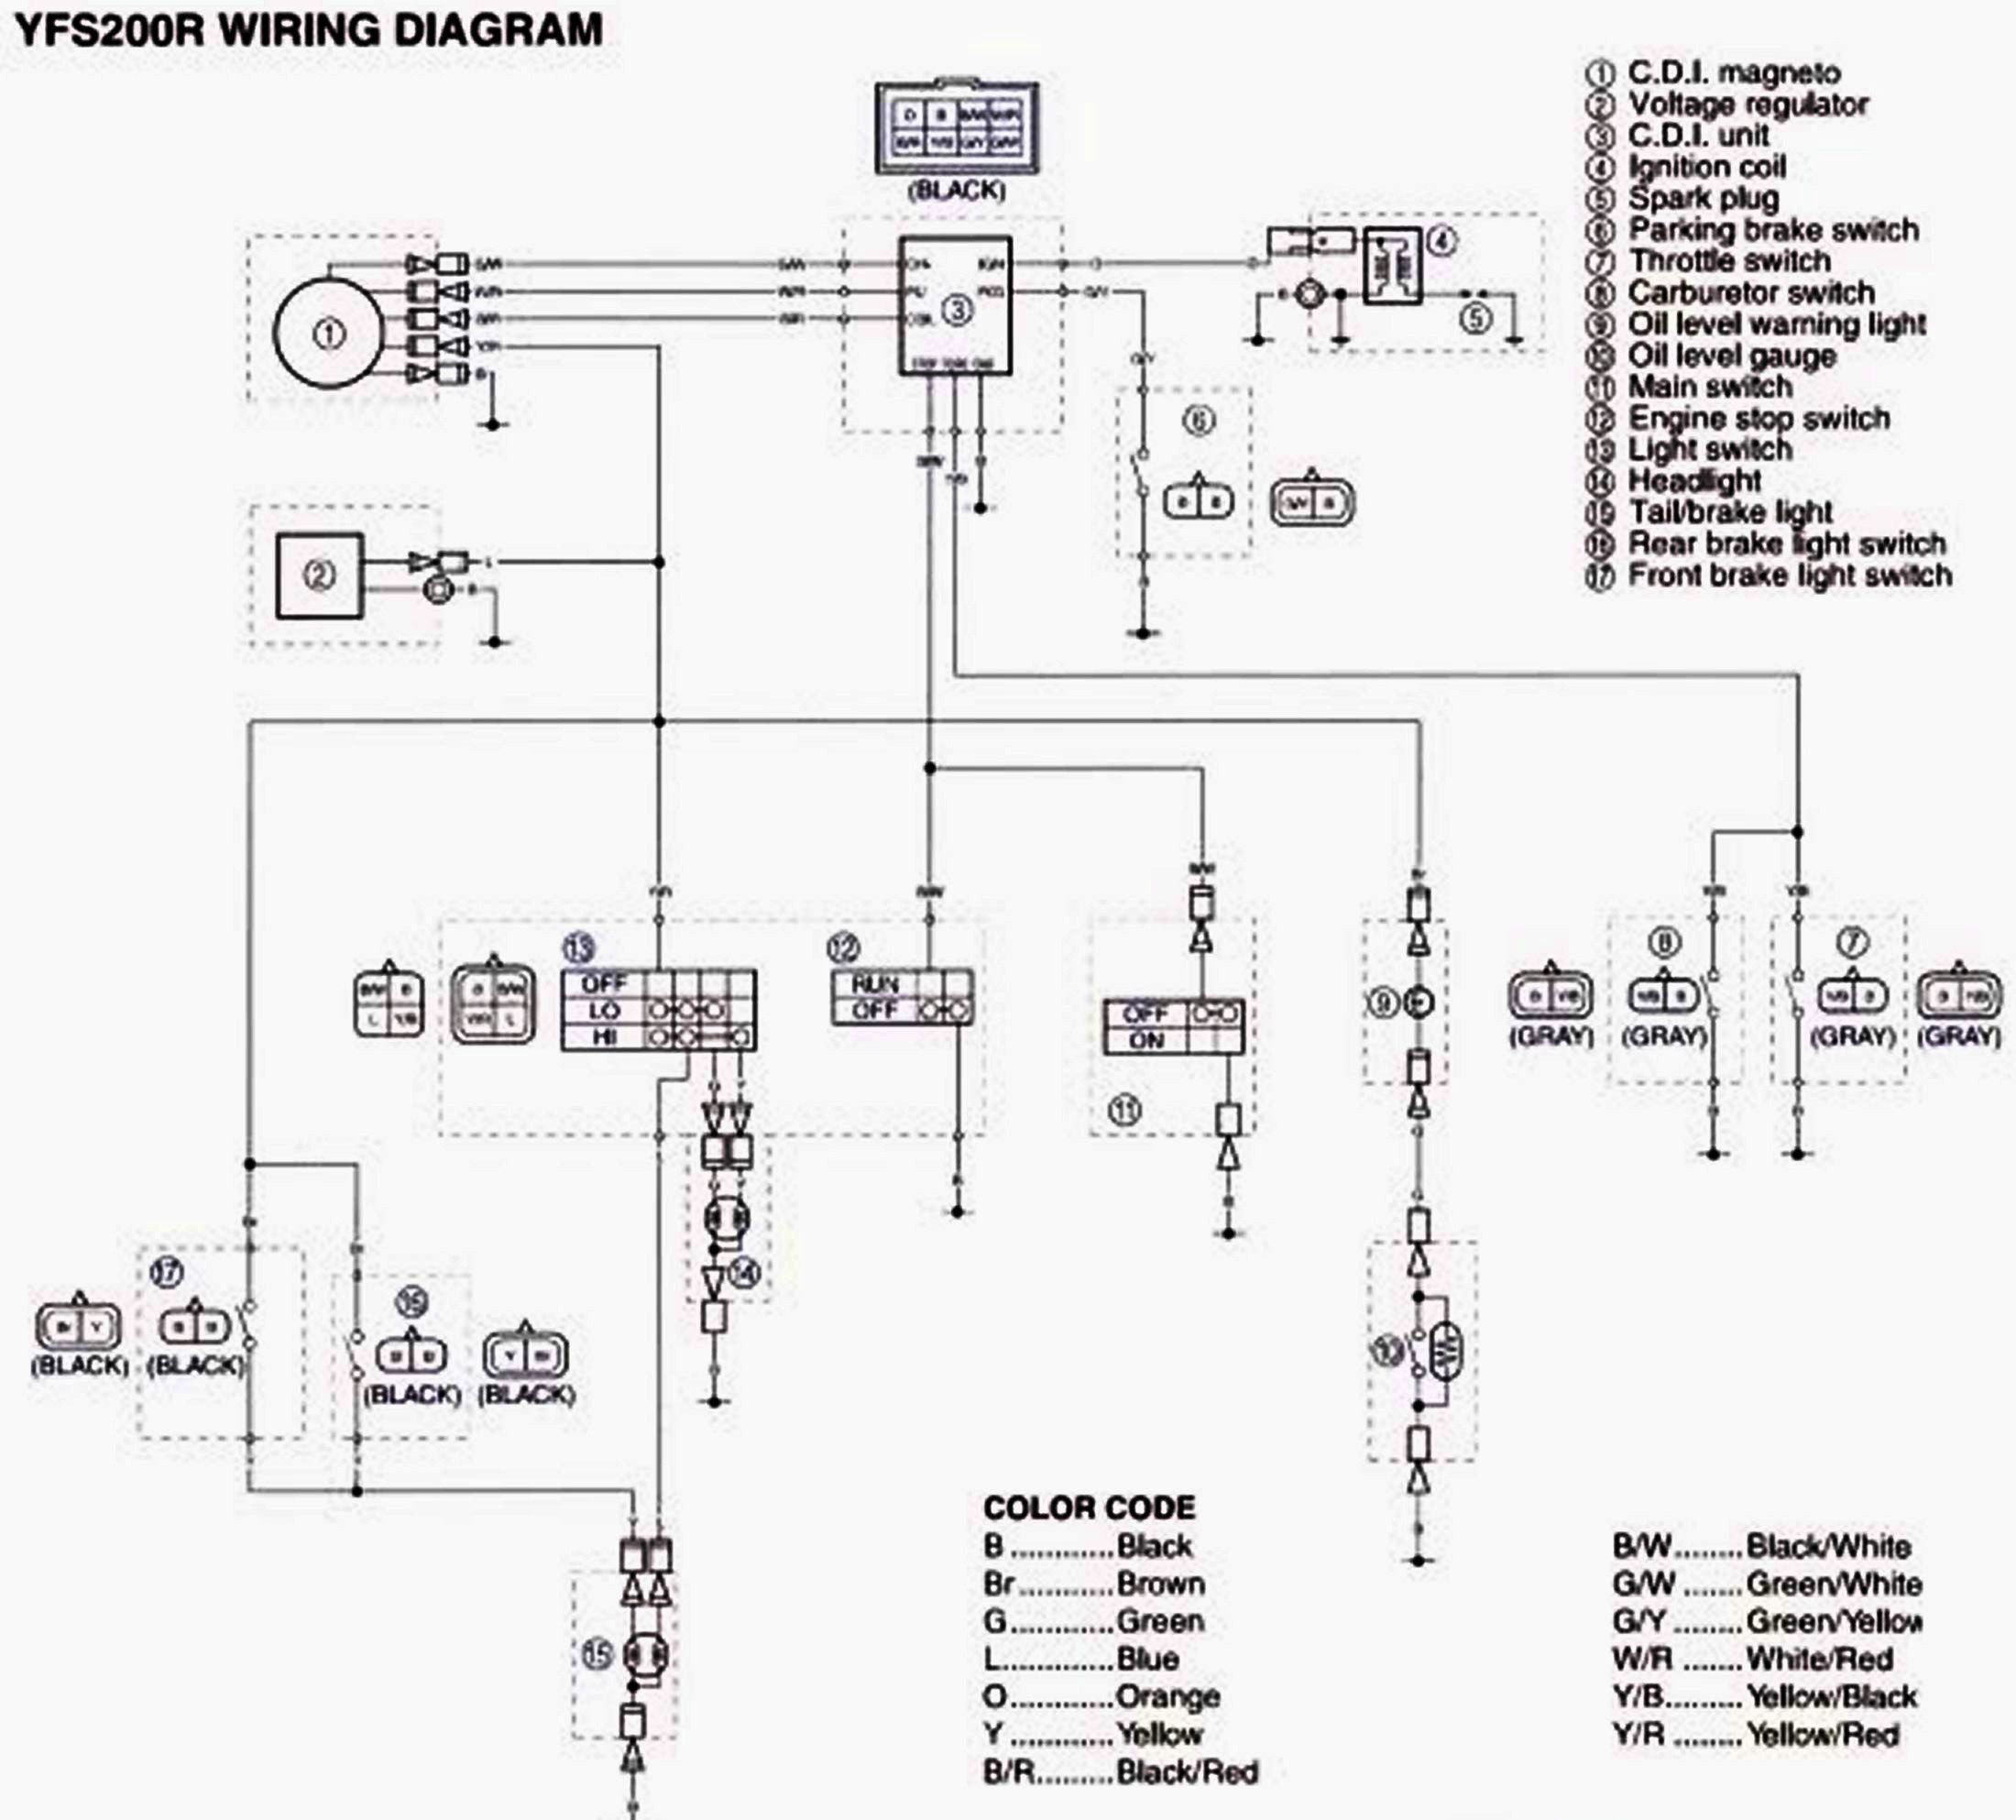 Wiring Diagrams Yamaha Atv : Yamaha atv wiring diagram images